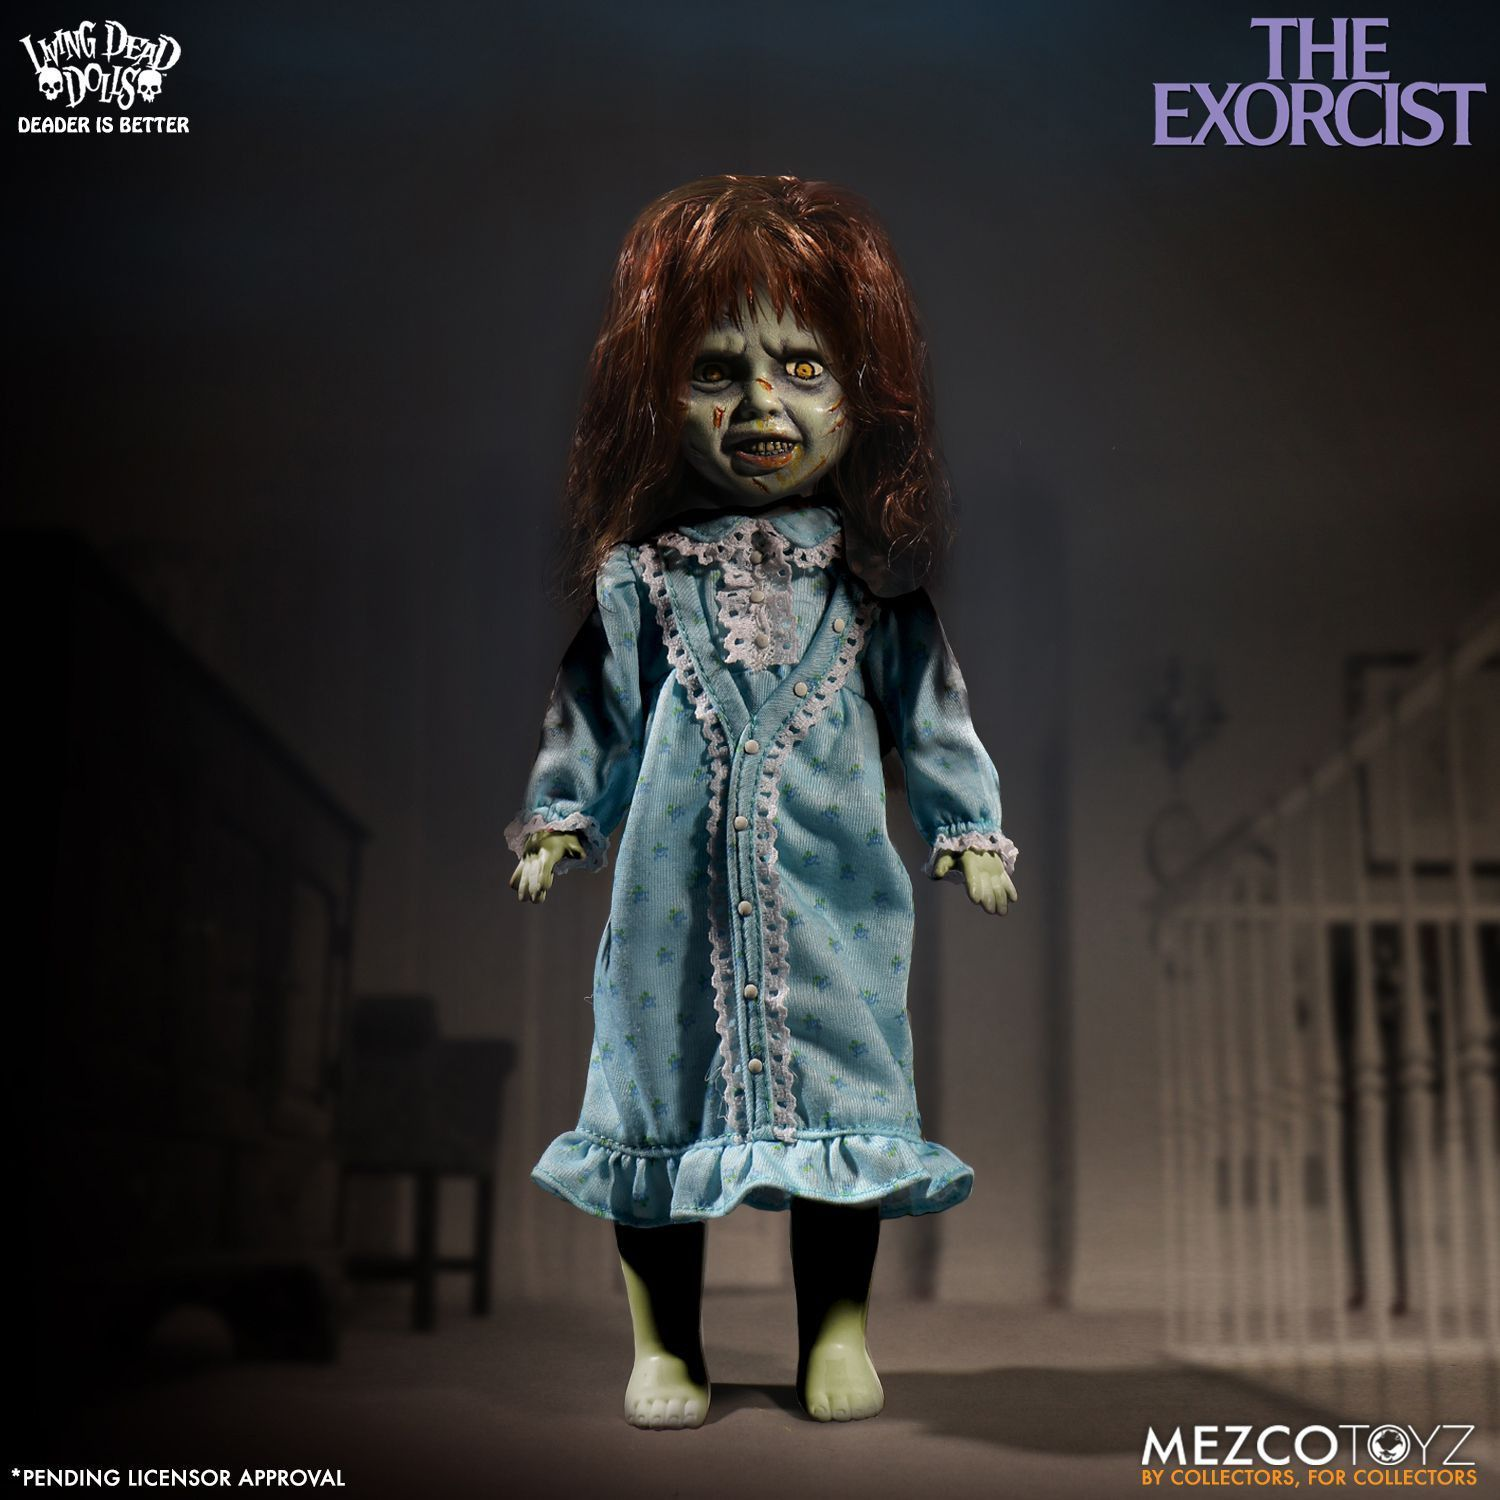 LIVING DEAD DOLLS PRESENTS THE EXORCIST (PREORDER